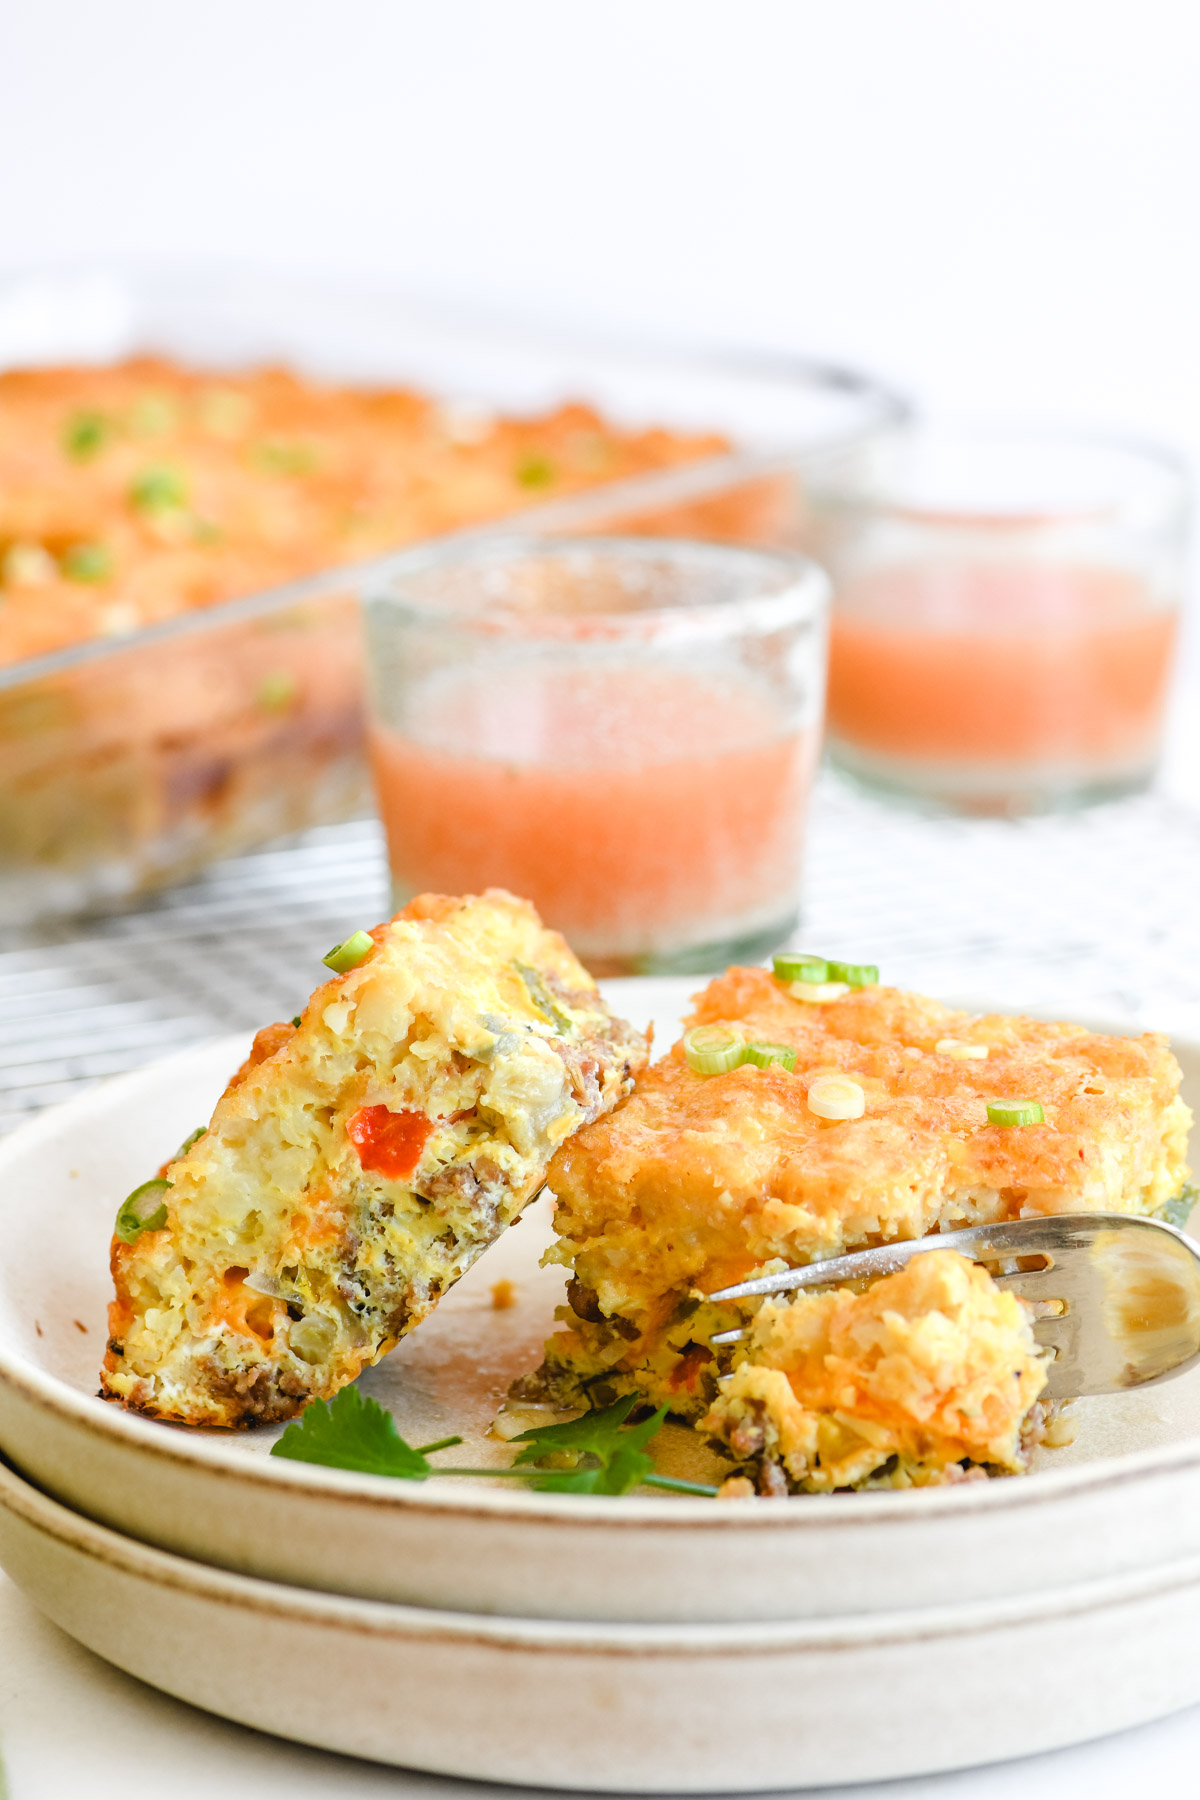 breakfast casserole on a plate with fork.